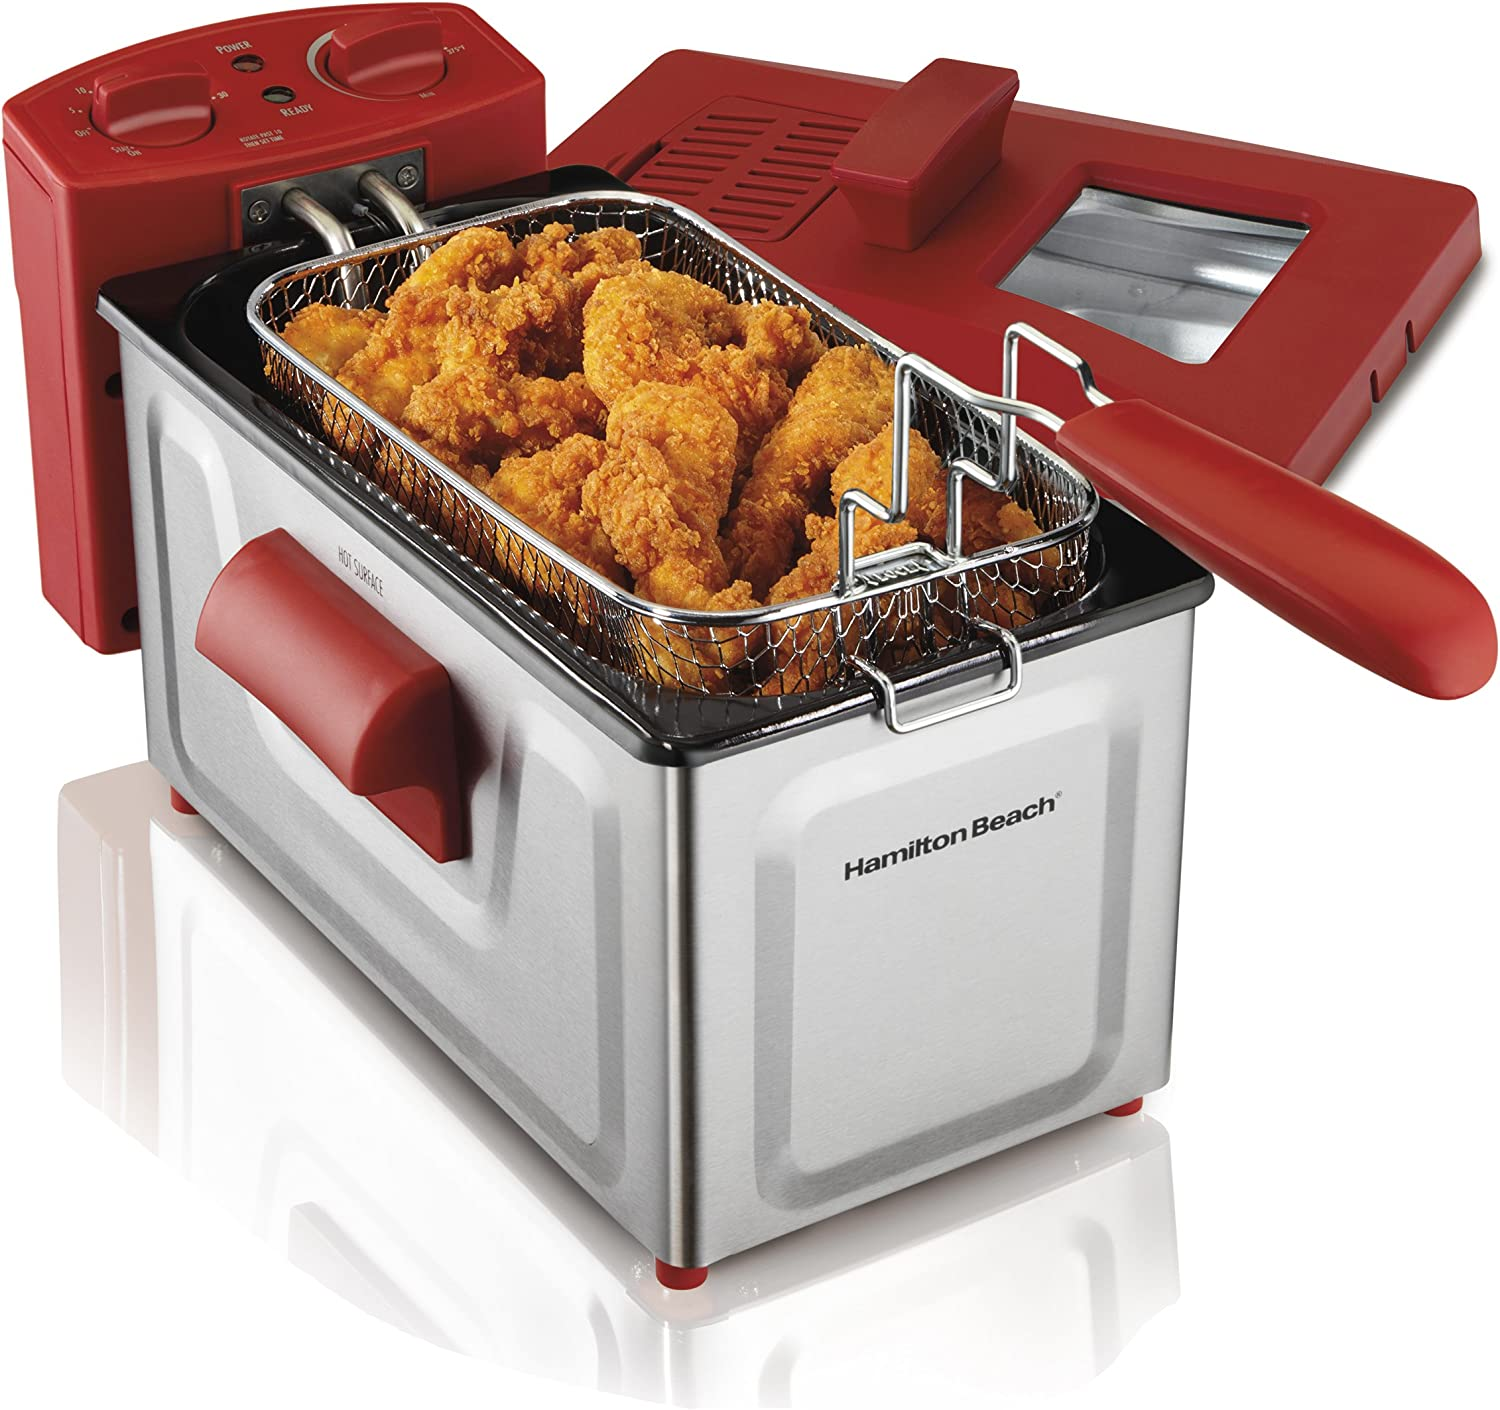 Hamilton Beach 8 Cup Fast Cooking Stainless Steel Deep Fryer with Lid 35201